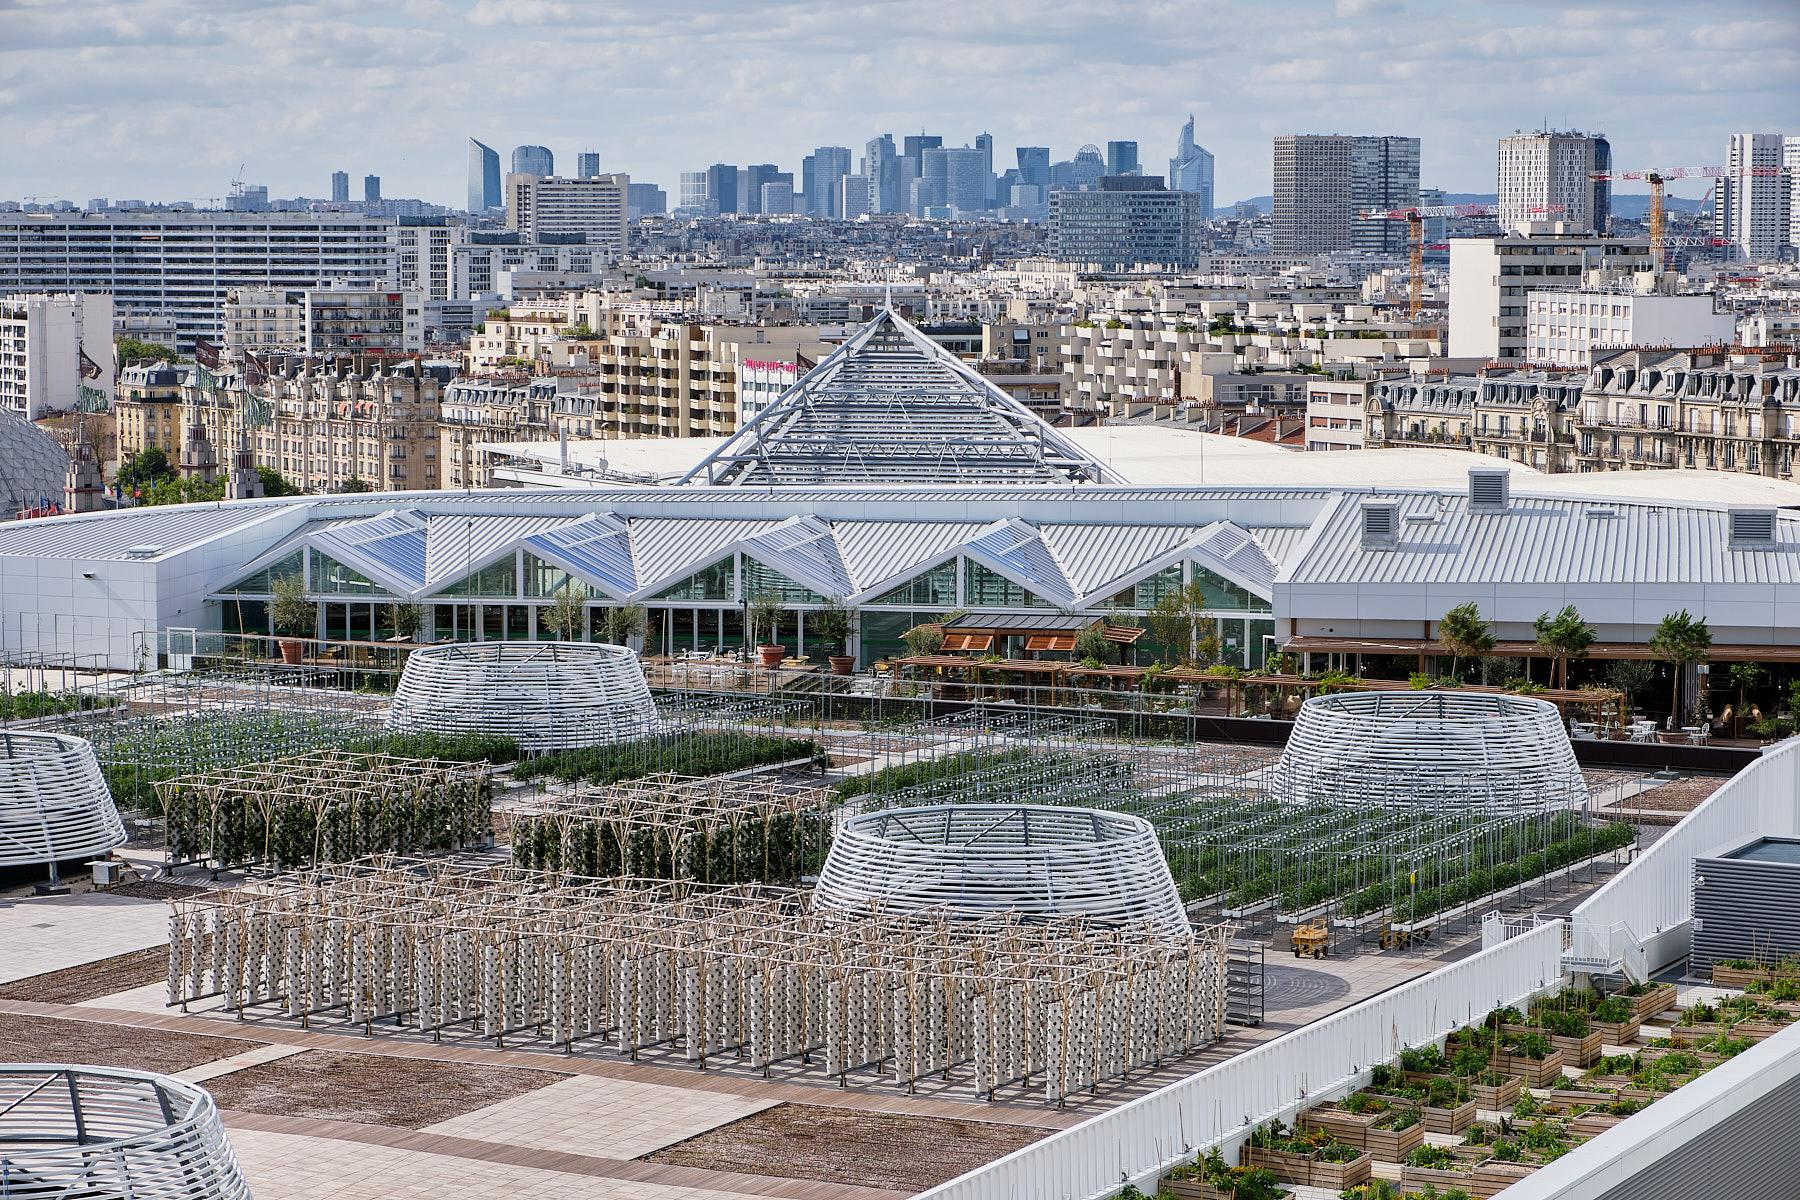 View of the urban farm from the Mama shelter hotel with the business area of La Defense in the background.